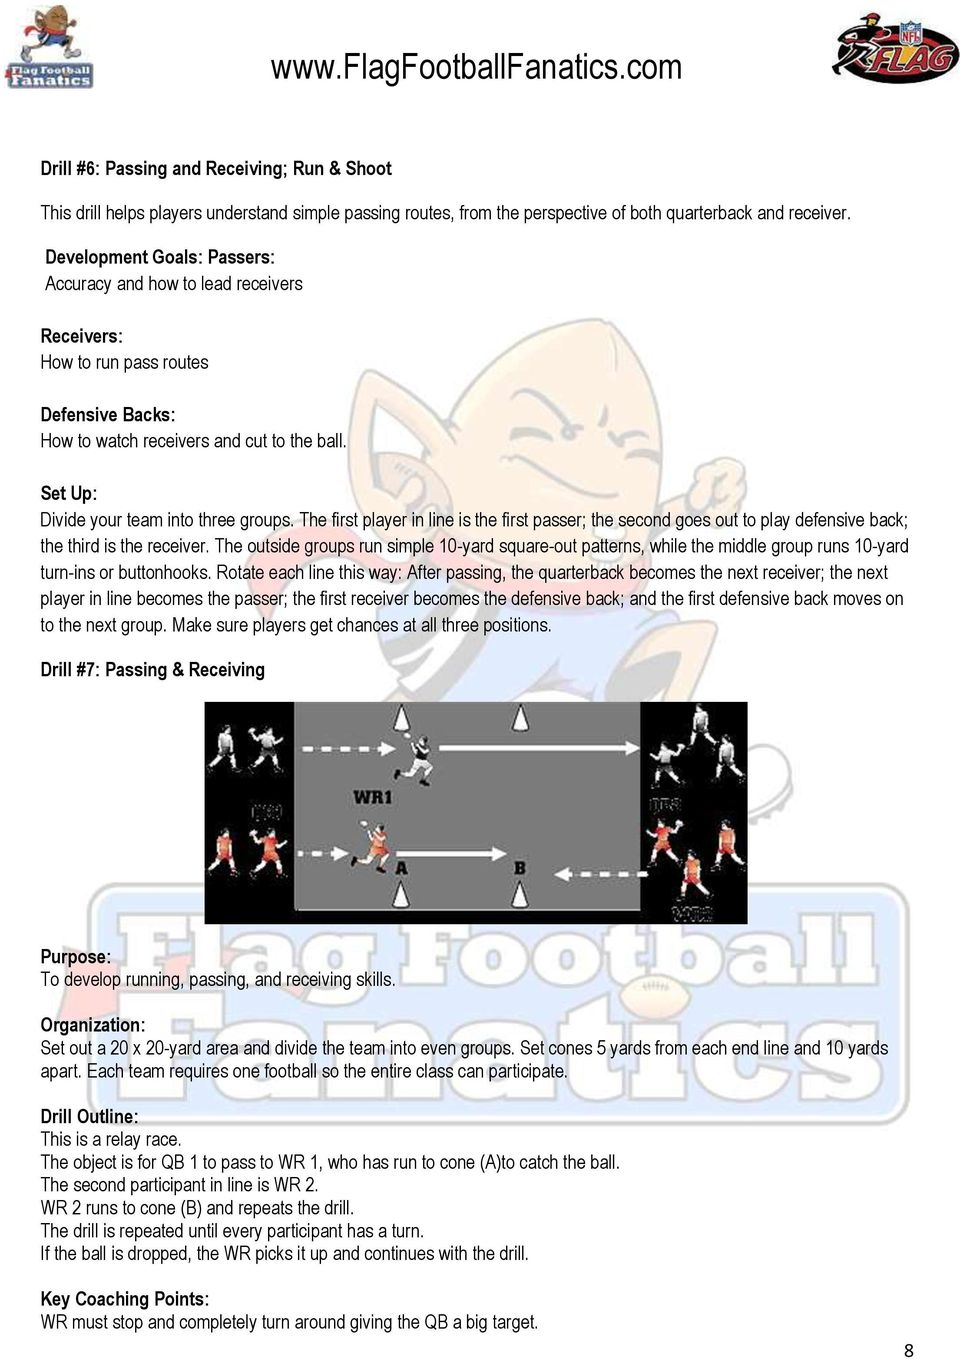 Basic Flag Football Coaching Strategies Tips Pdf Skills In Relay Race Set Up Divide Your Team Into Three Groups The First Player Line Is